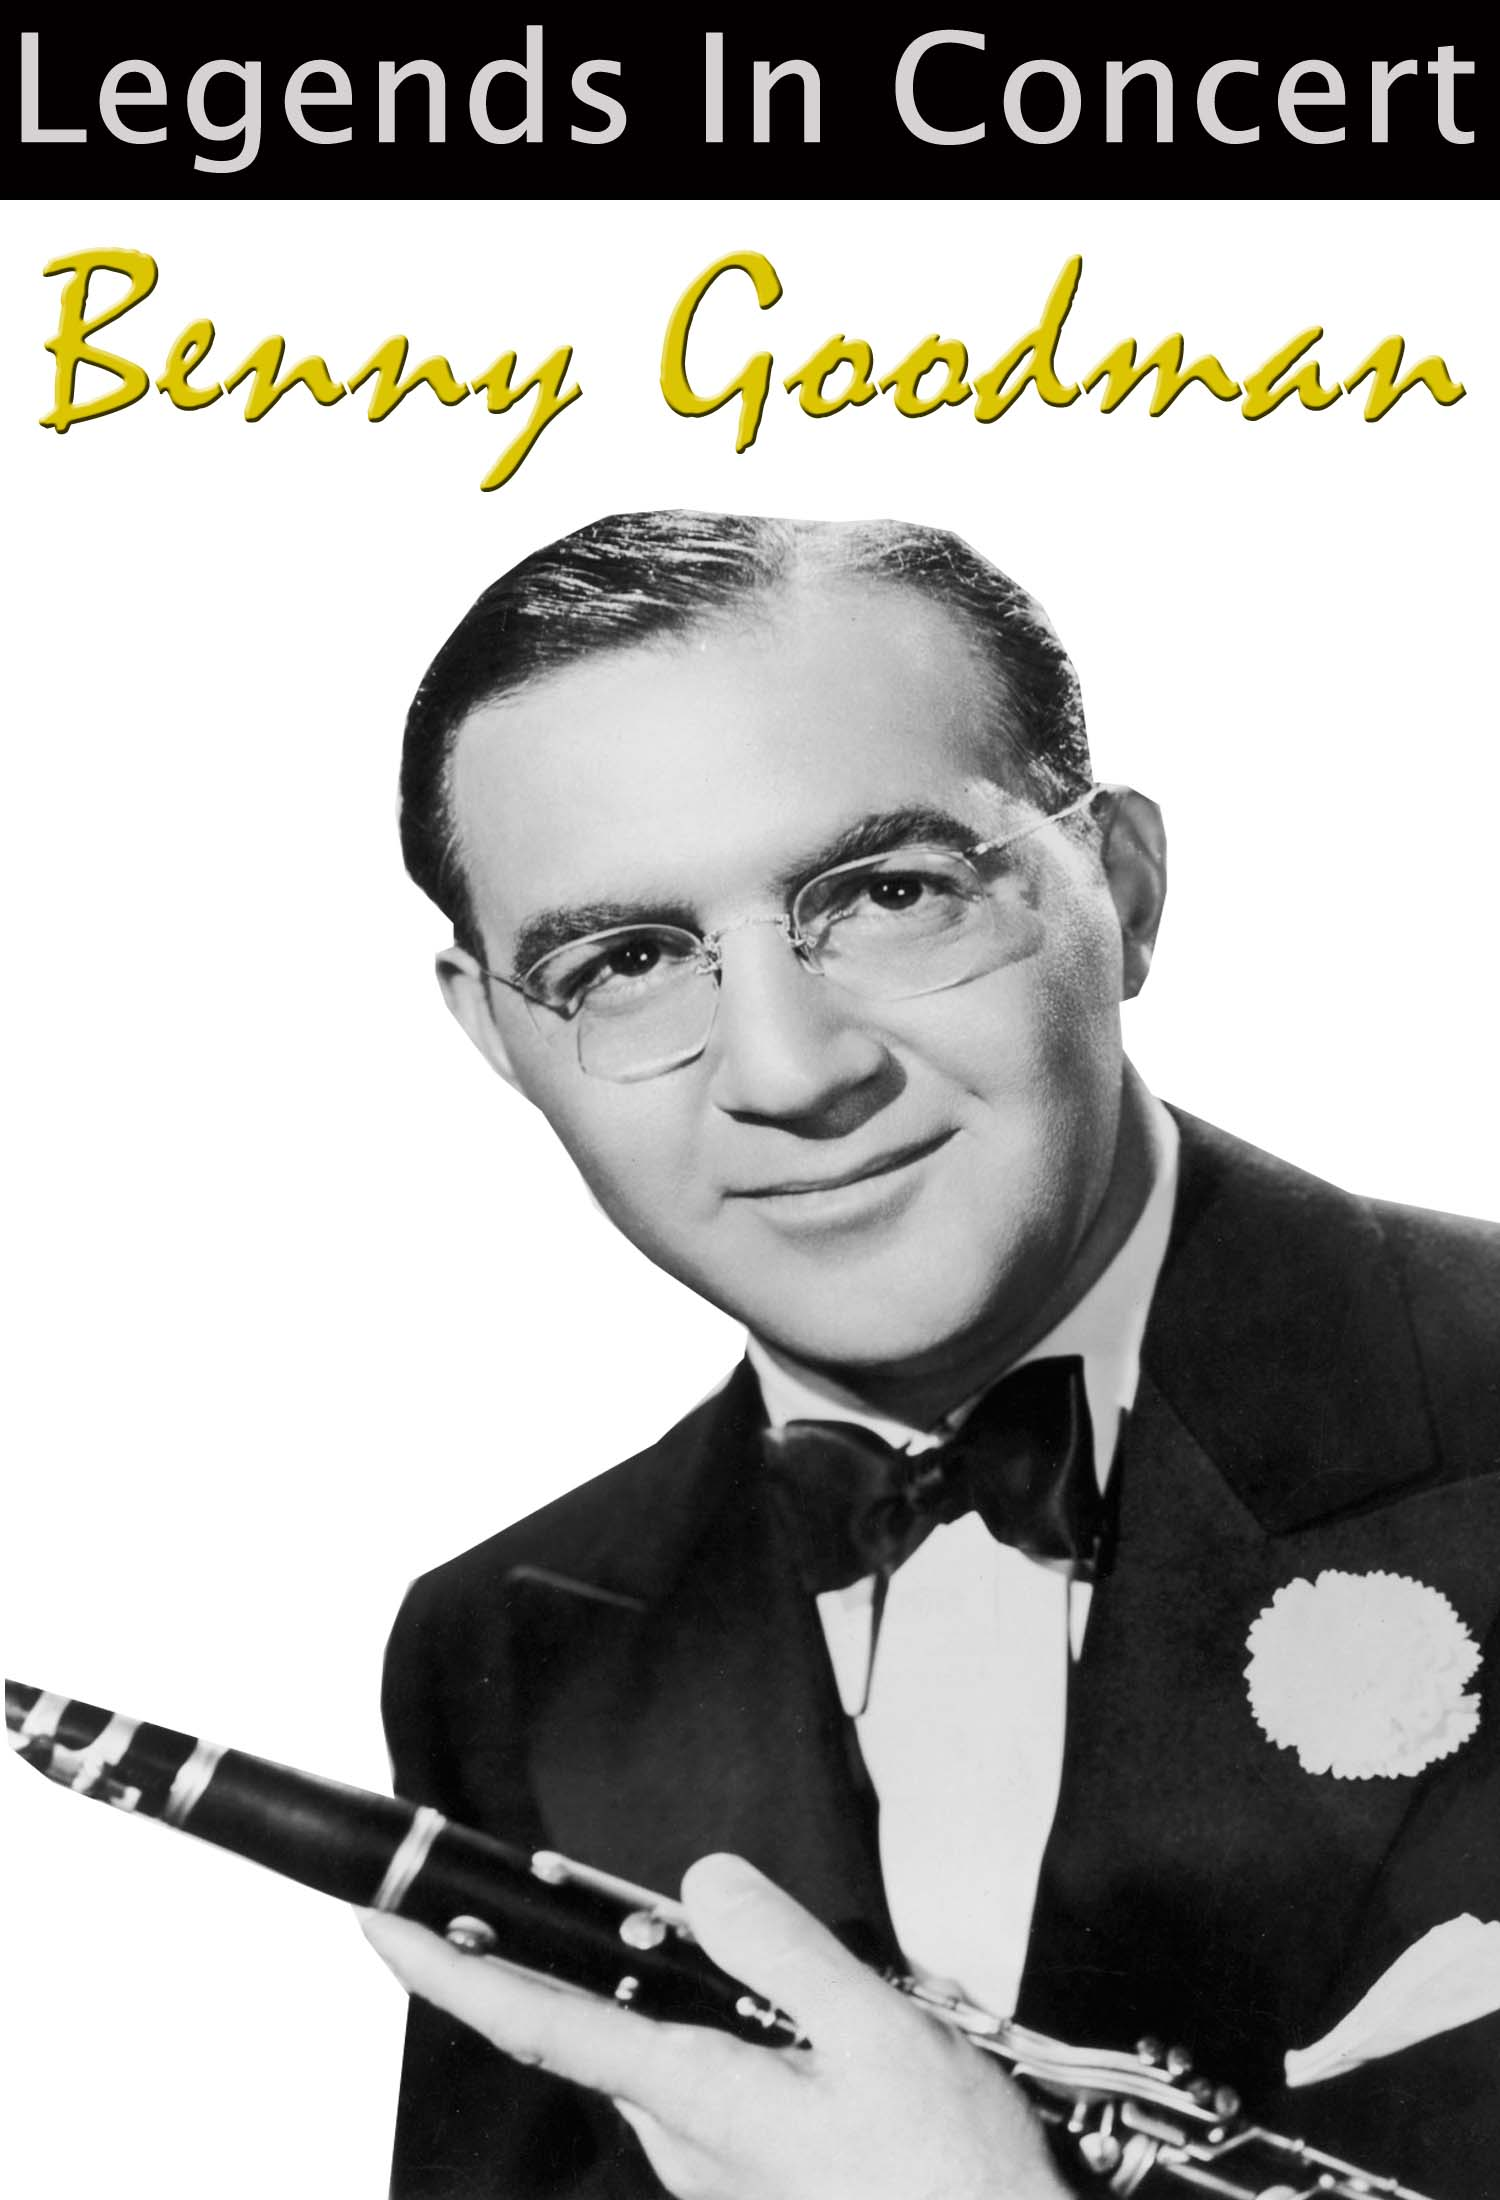 LEGENDS IN CONCERT: BENNY GOODMAN